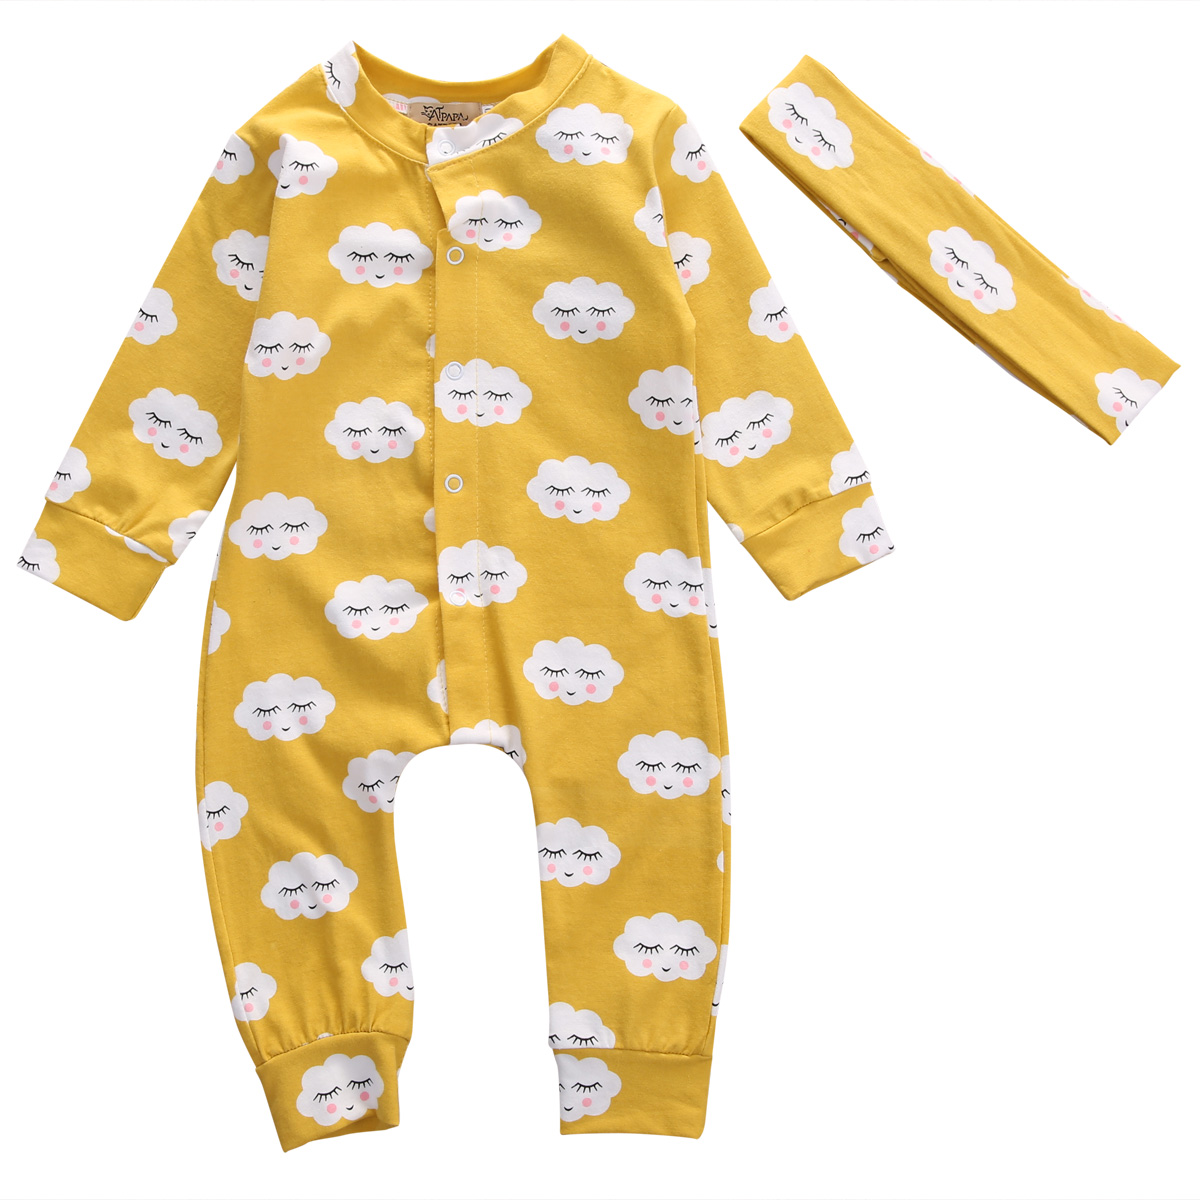 цена Pudcoco Baby Rompers Spring Autumn Newborn Long Sleeve Buttons Up Rompers Baby Clothes Smile Face Print Yellow